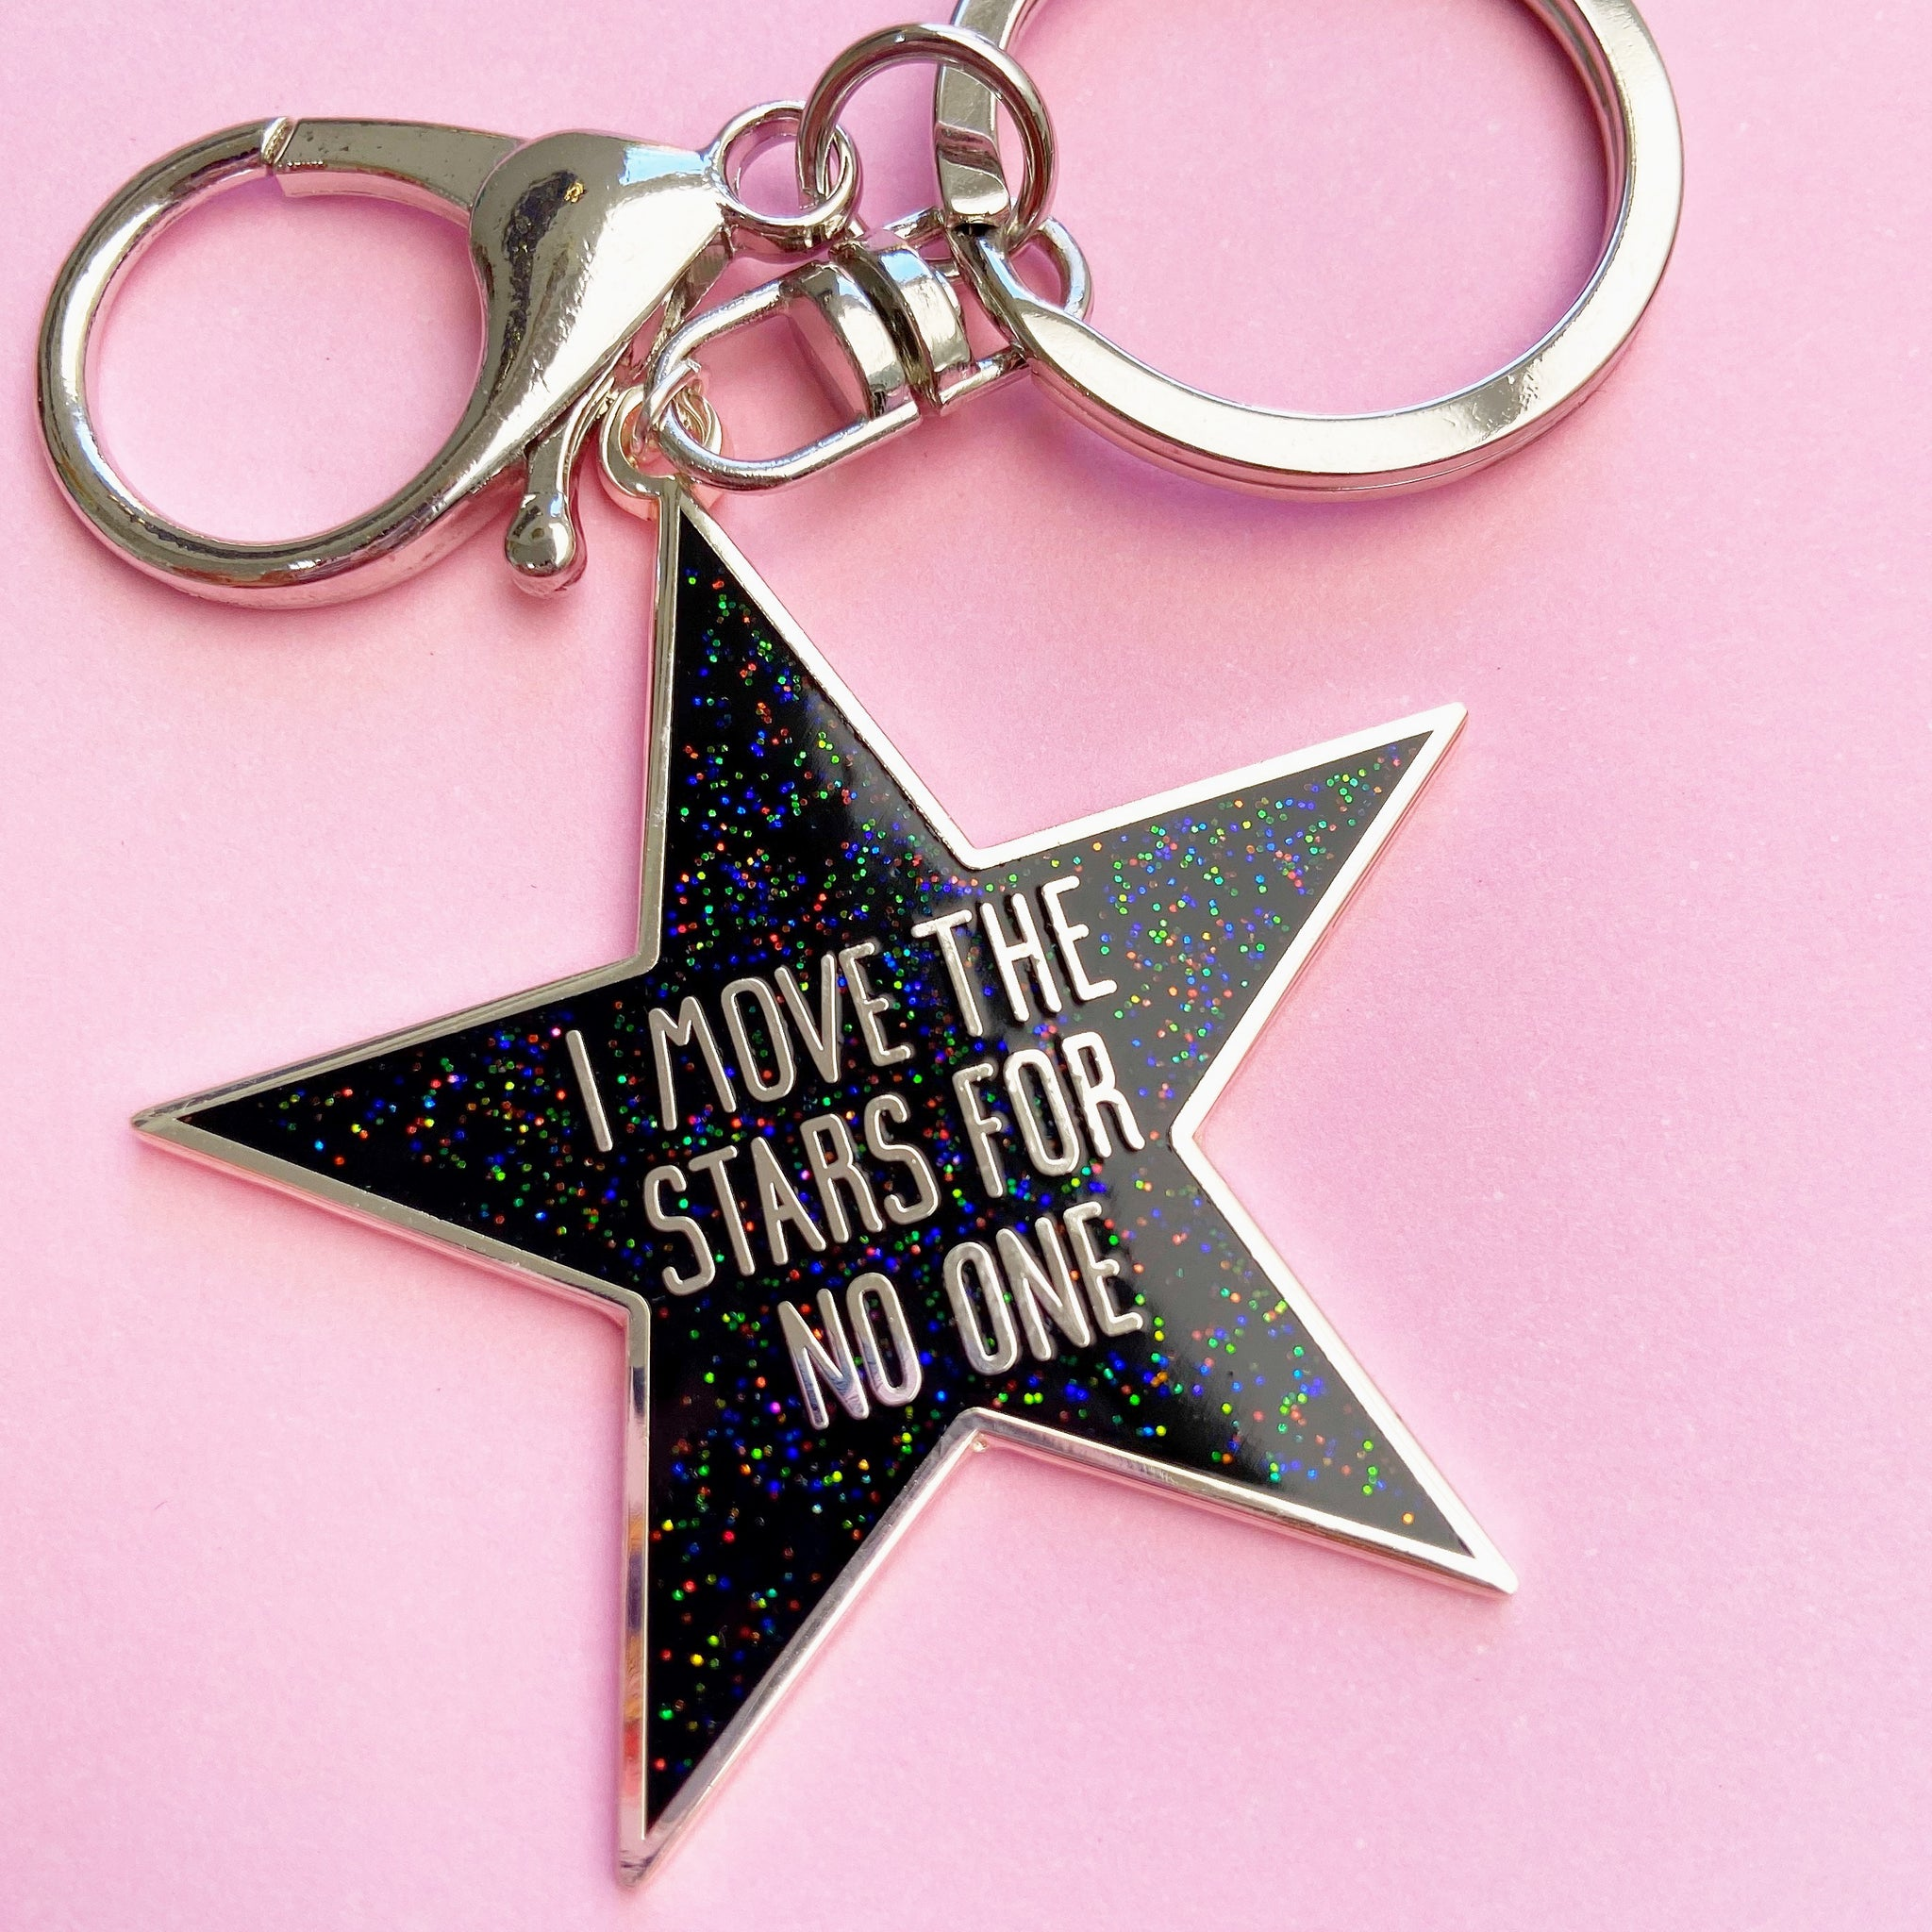 I Move The Stars For No One Enamel Bag Charm (Black)